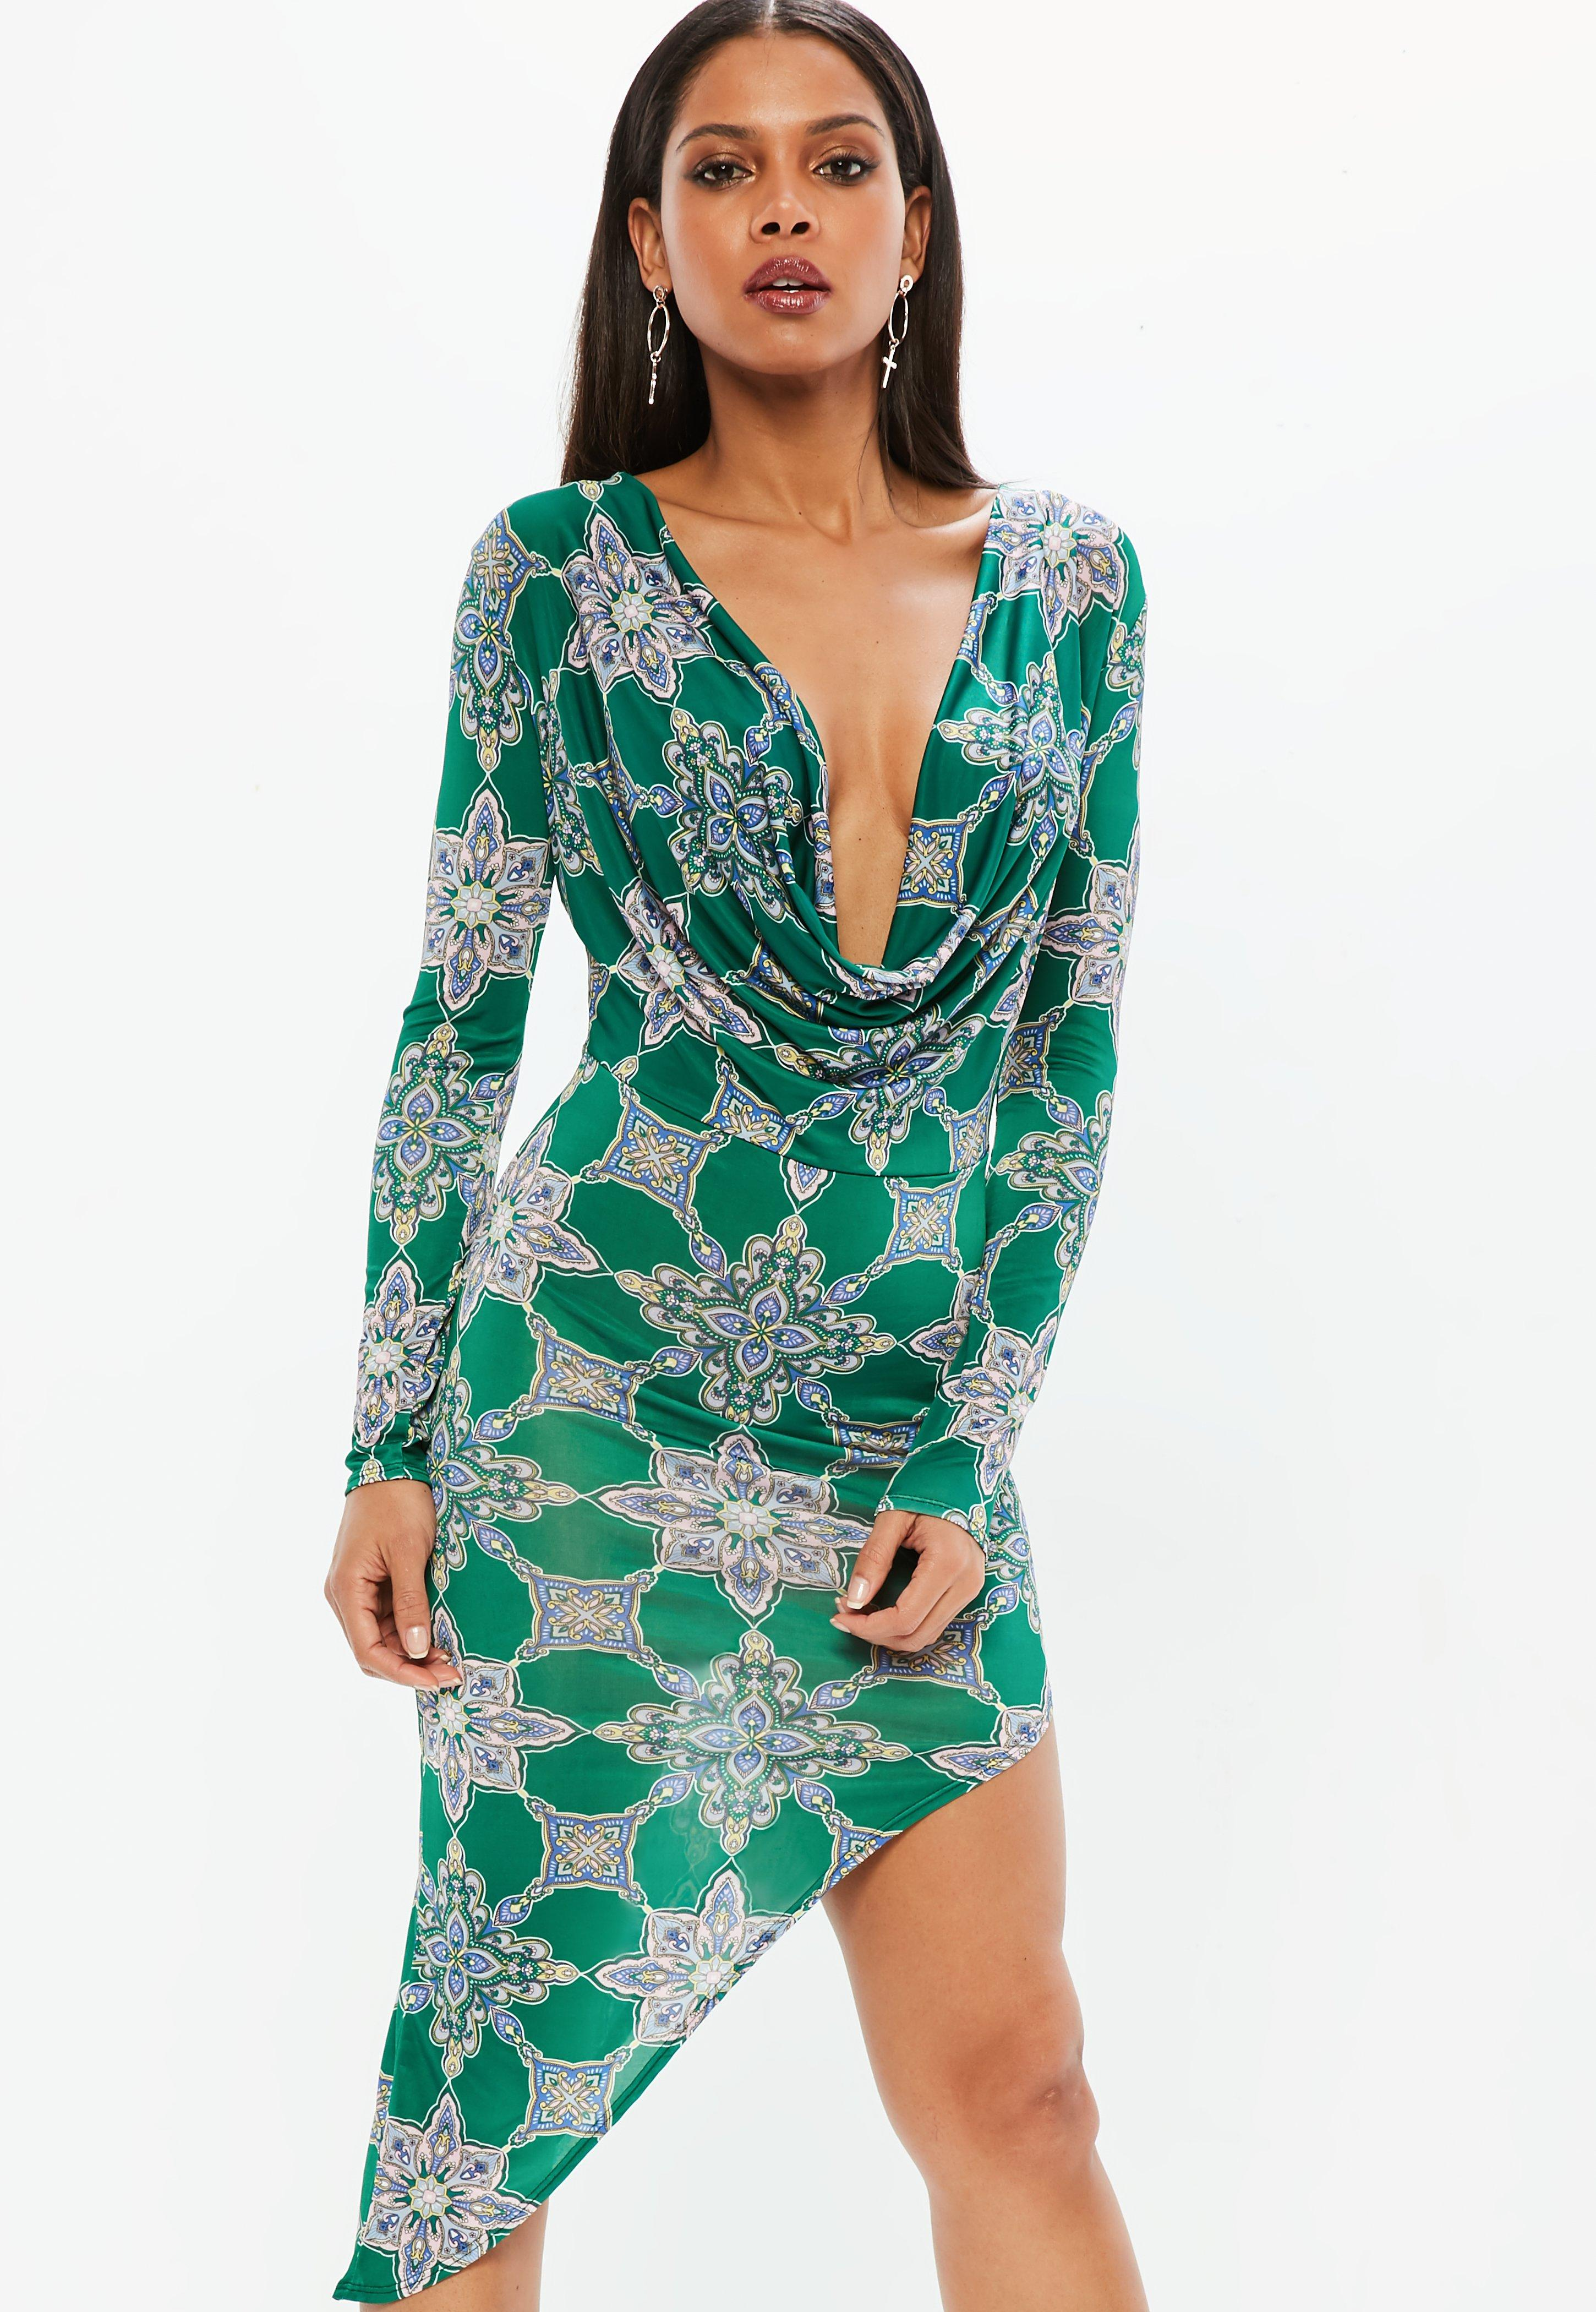 Missguided Tile Print Cowl Slinky Dress Buy Cheap Pre Order Under Sale Online Sale 100% Authentic Free Shipping For Cheap Big Discount Cheap Online Evpst7ecI